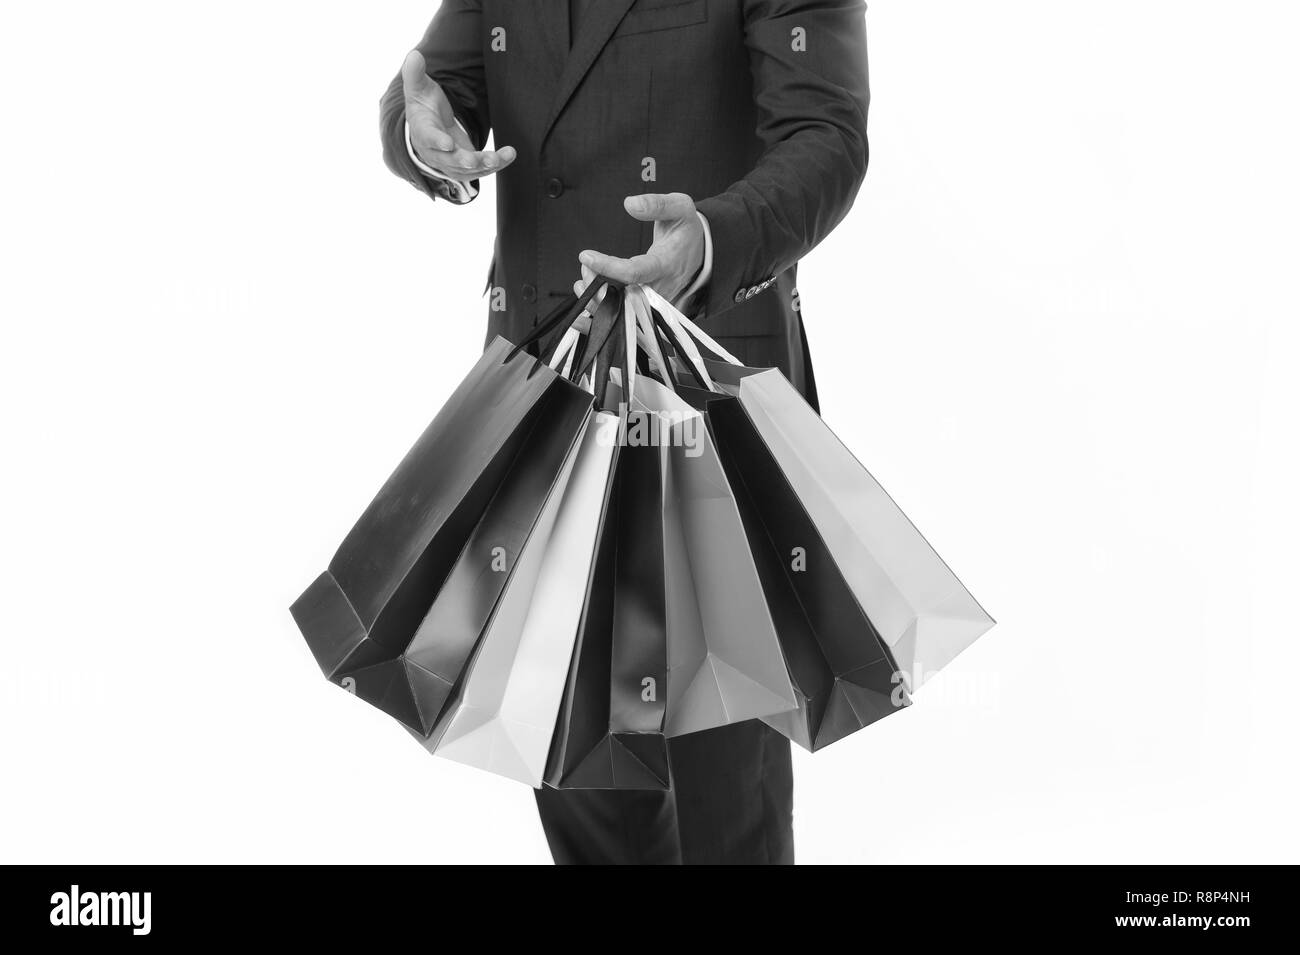 Recommend to buy. Hands of shopper carries shopping bags white background. Successful businessman choose only luxurious brands and shopping in high fashioned boutiques. Corporate discount sale. - Stock Image